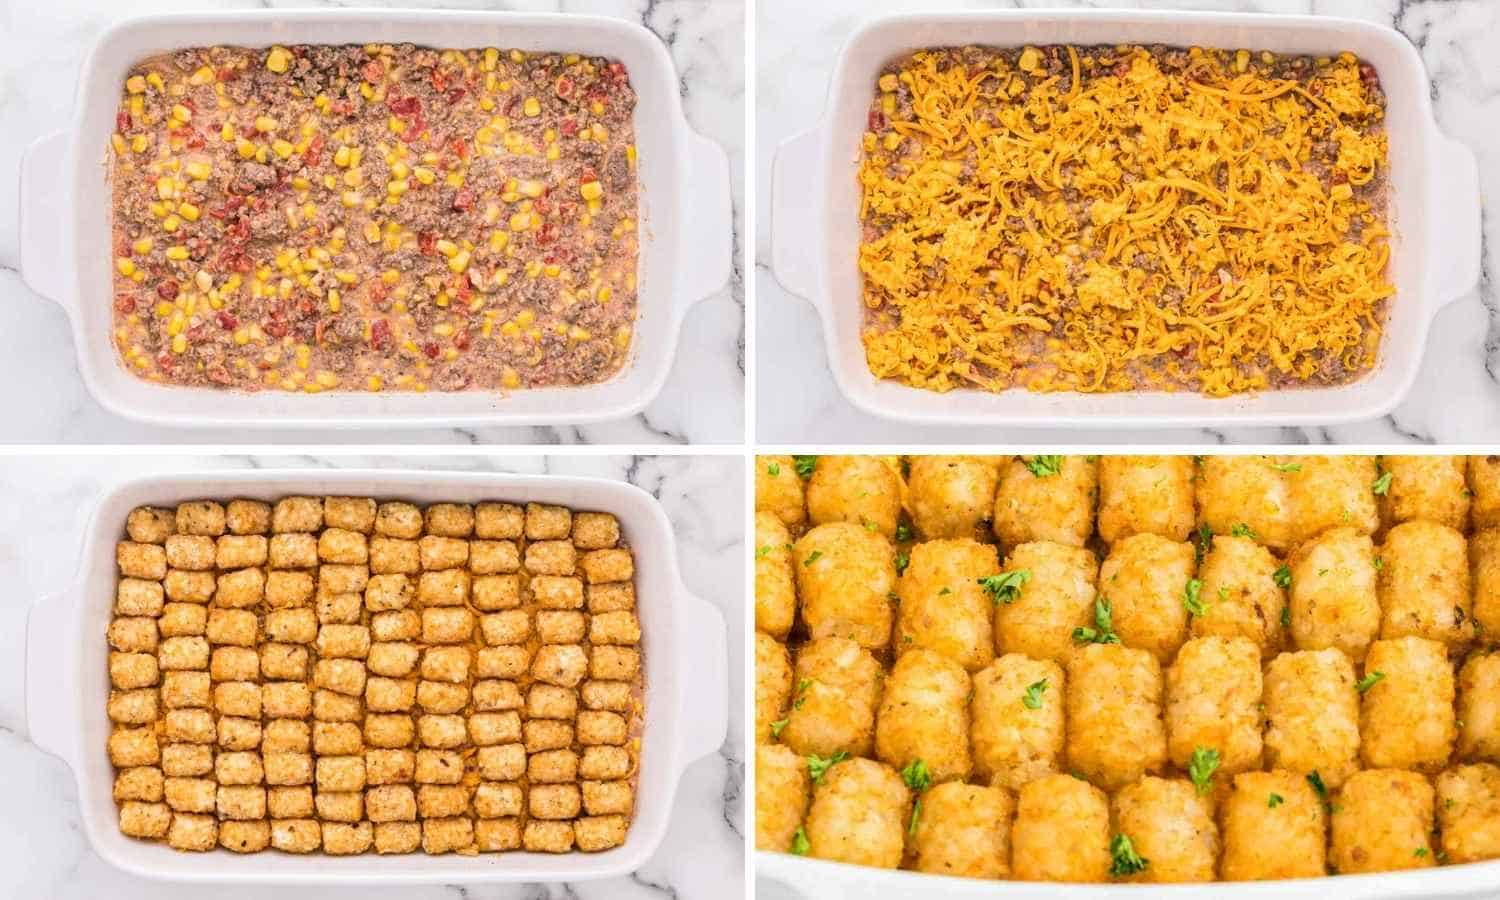 Collage of four images showing how to assemble and bake the casserole dish